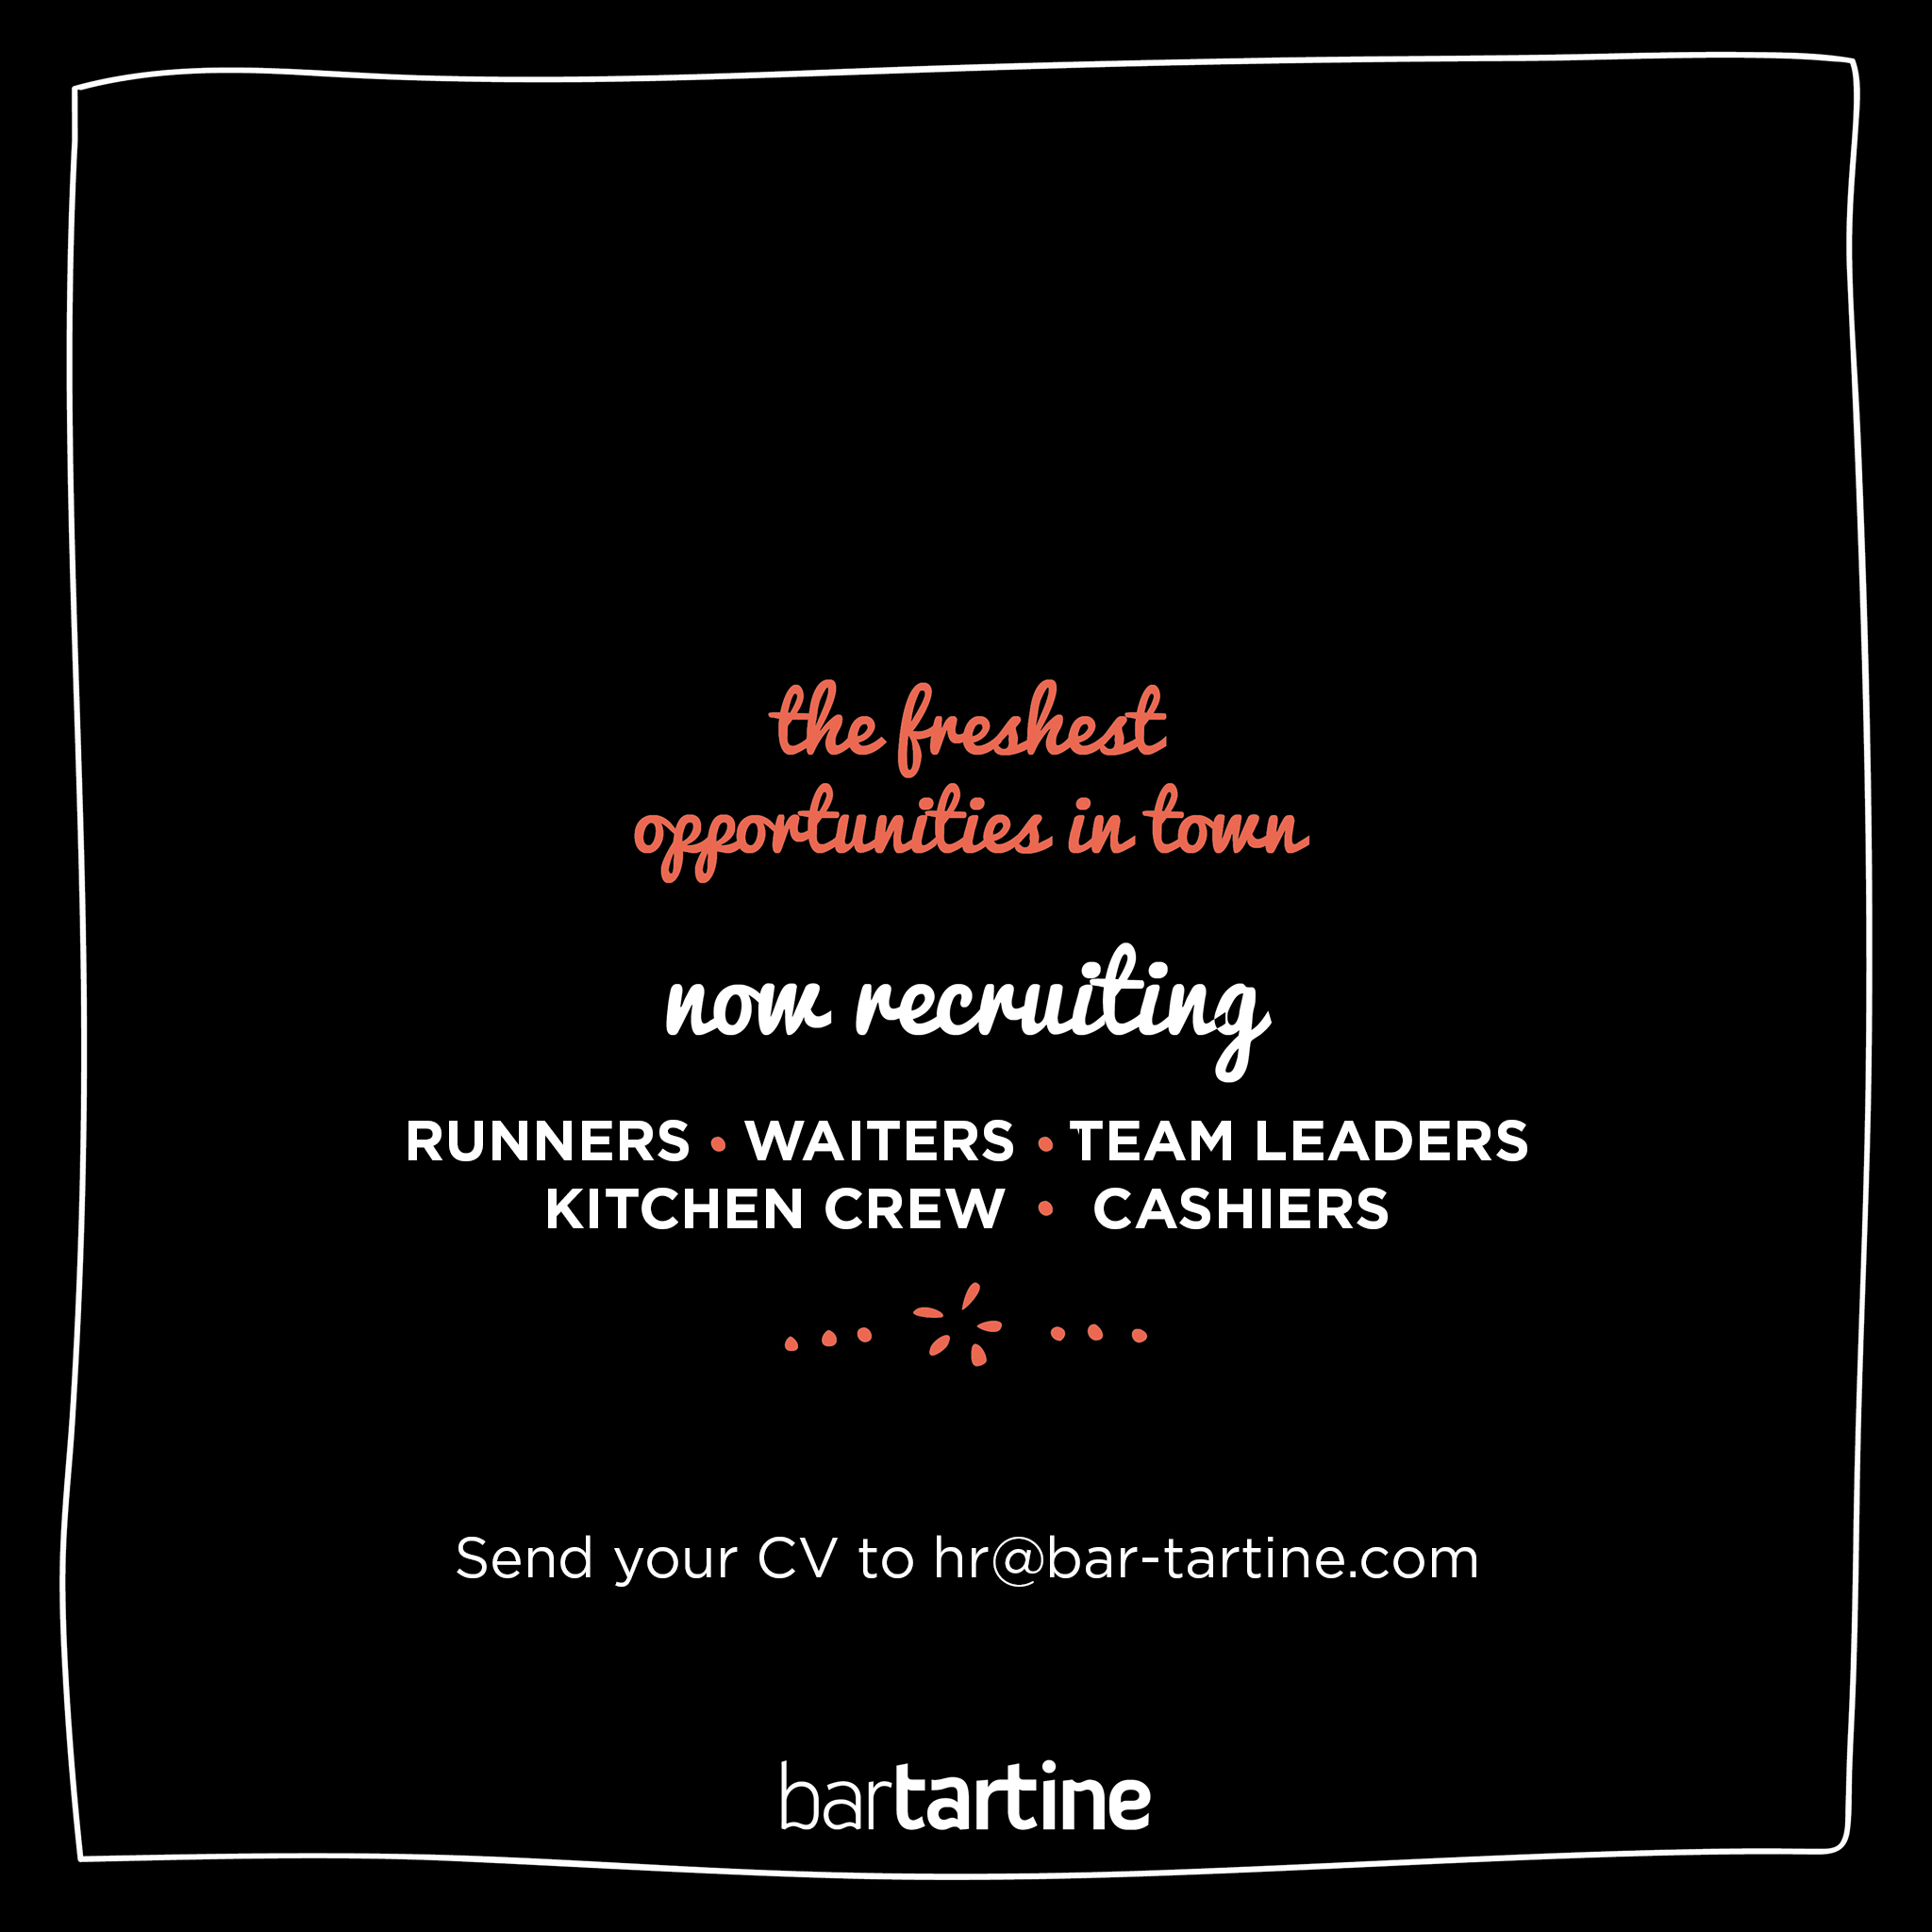 recruitment careers bartartine jobs